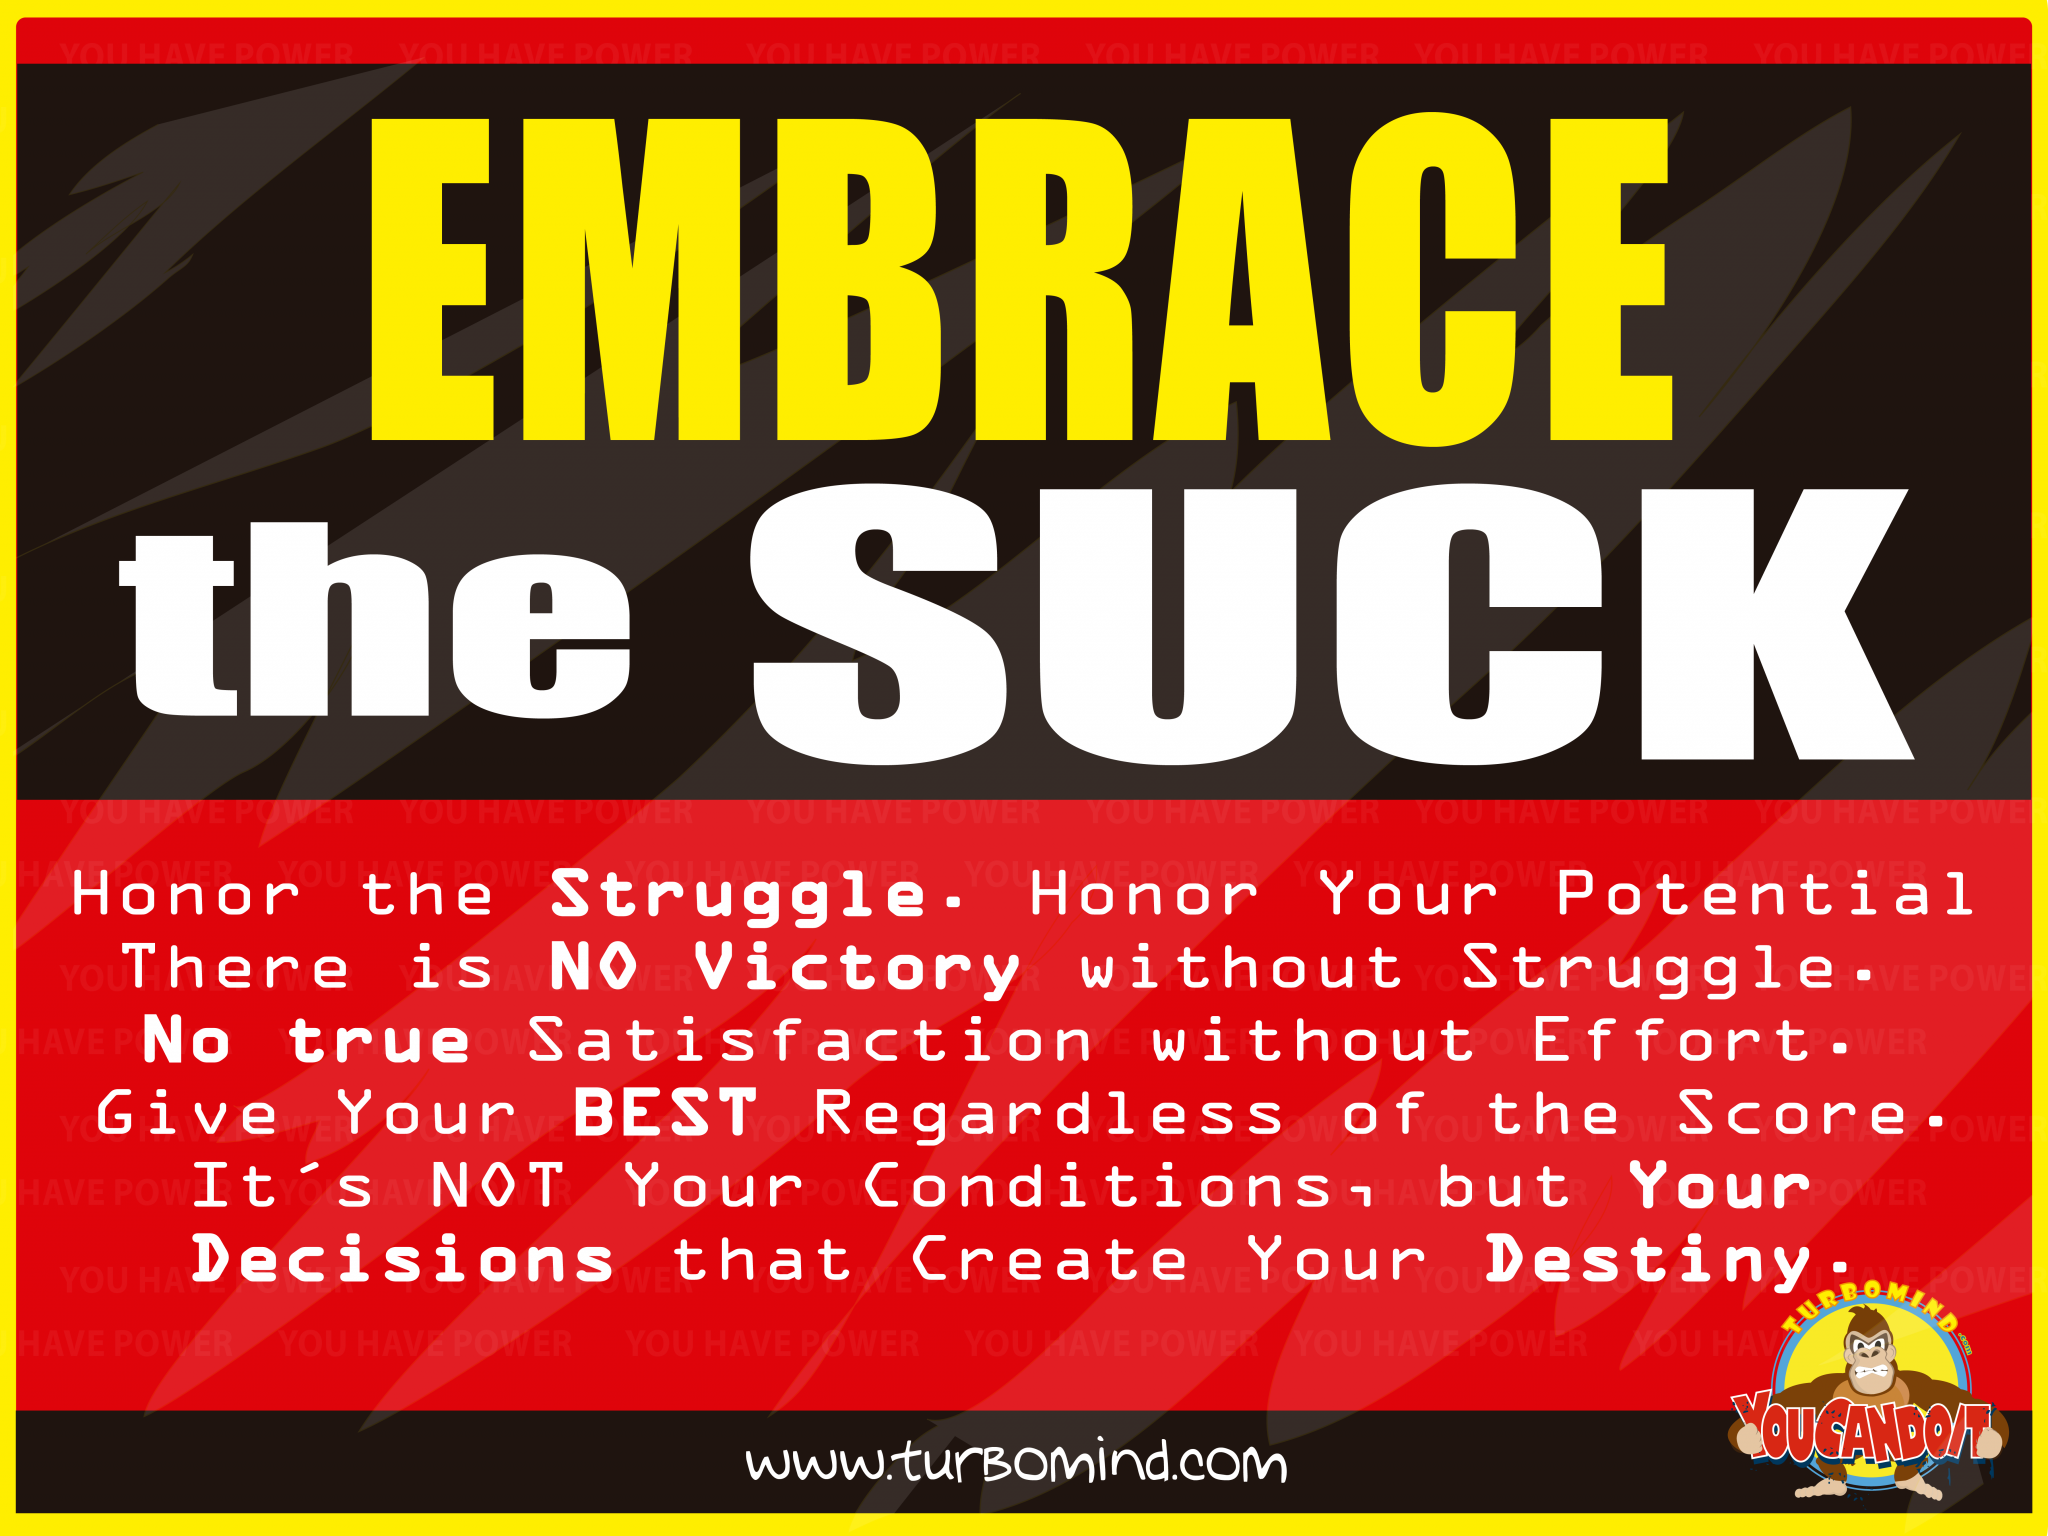 Embrace the Suck, https://www.turbomind.com/